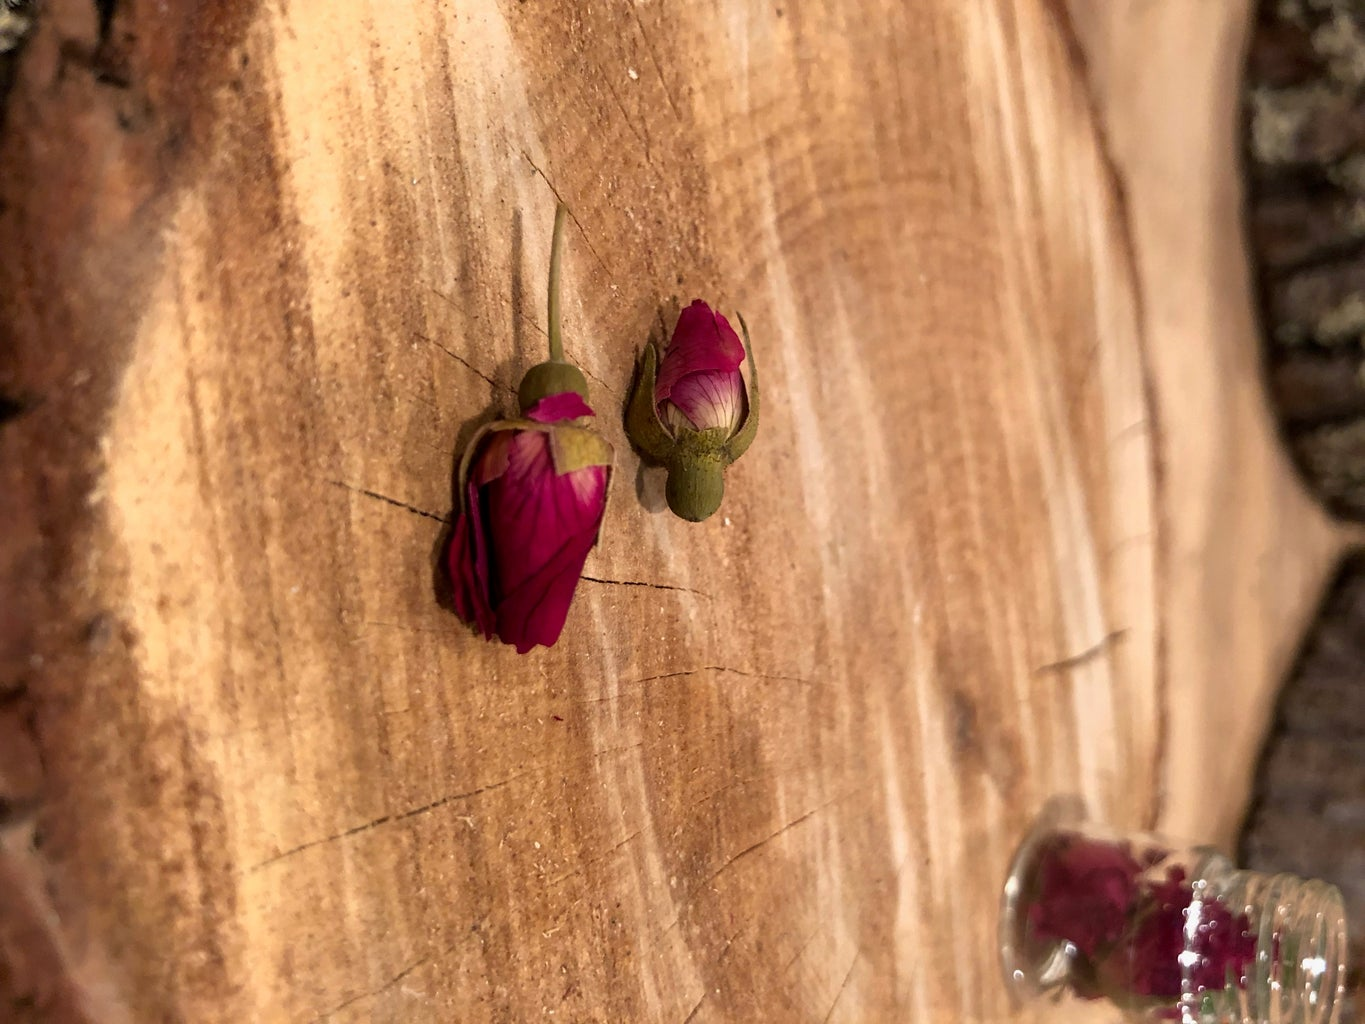 Add Desired Amount of Rose Buds